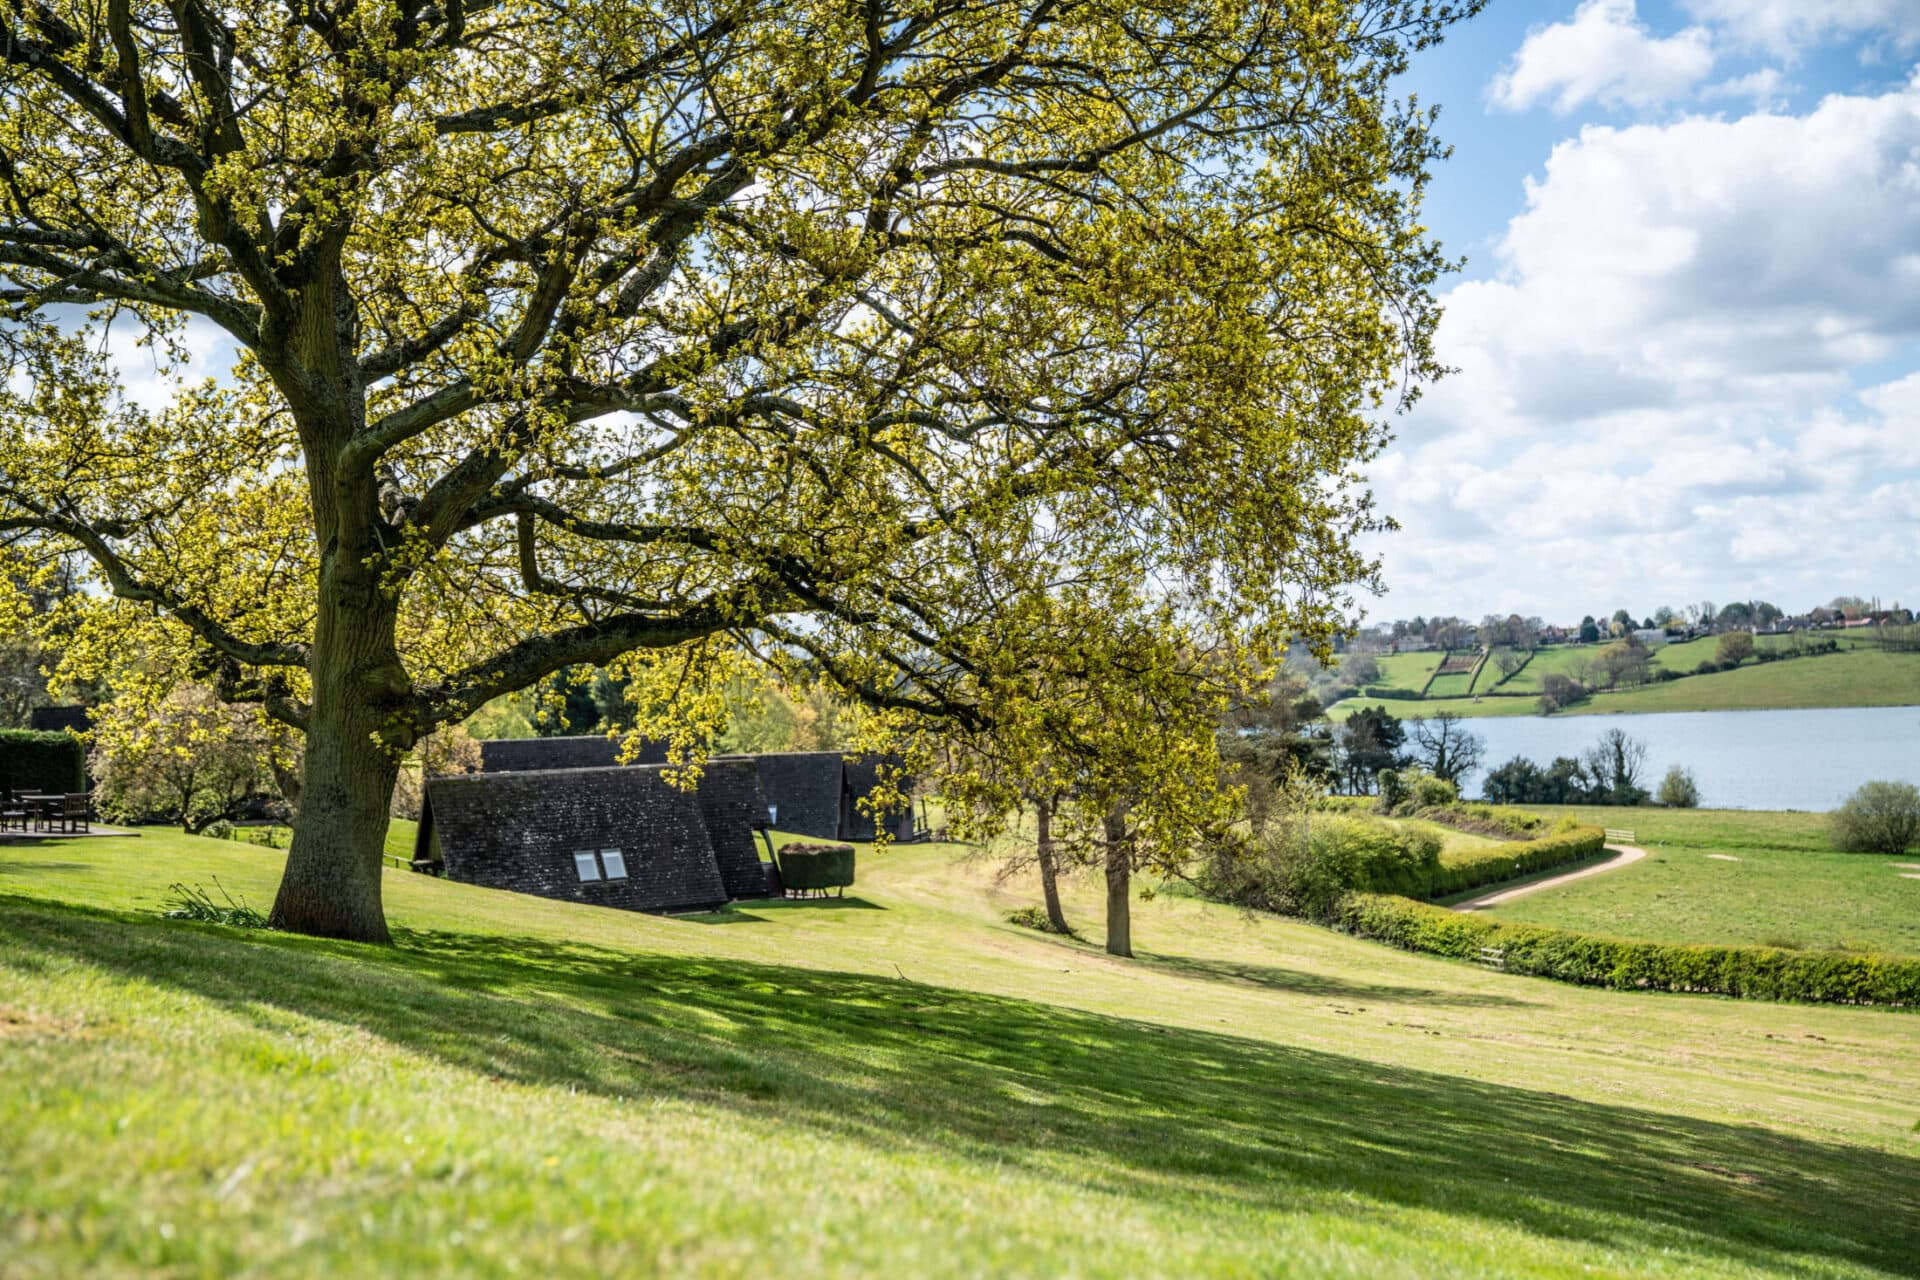 Lodges on the grounds of Rutland Hall with views of Rutland Water